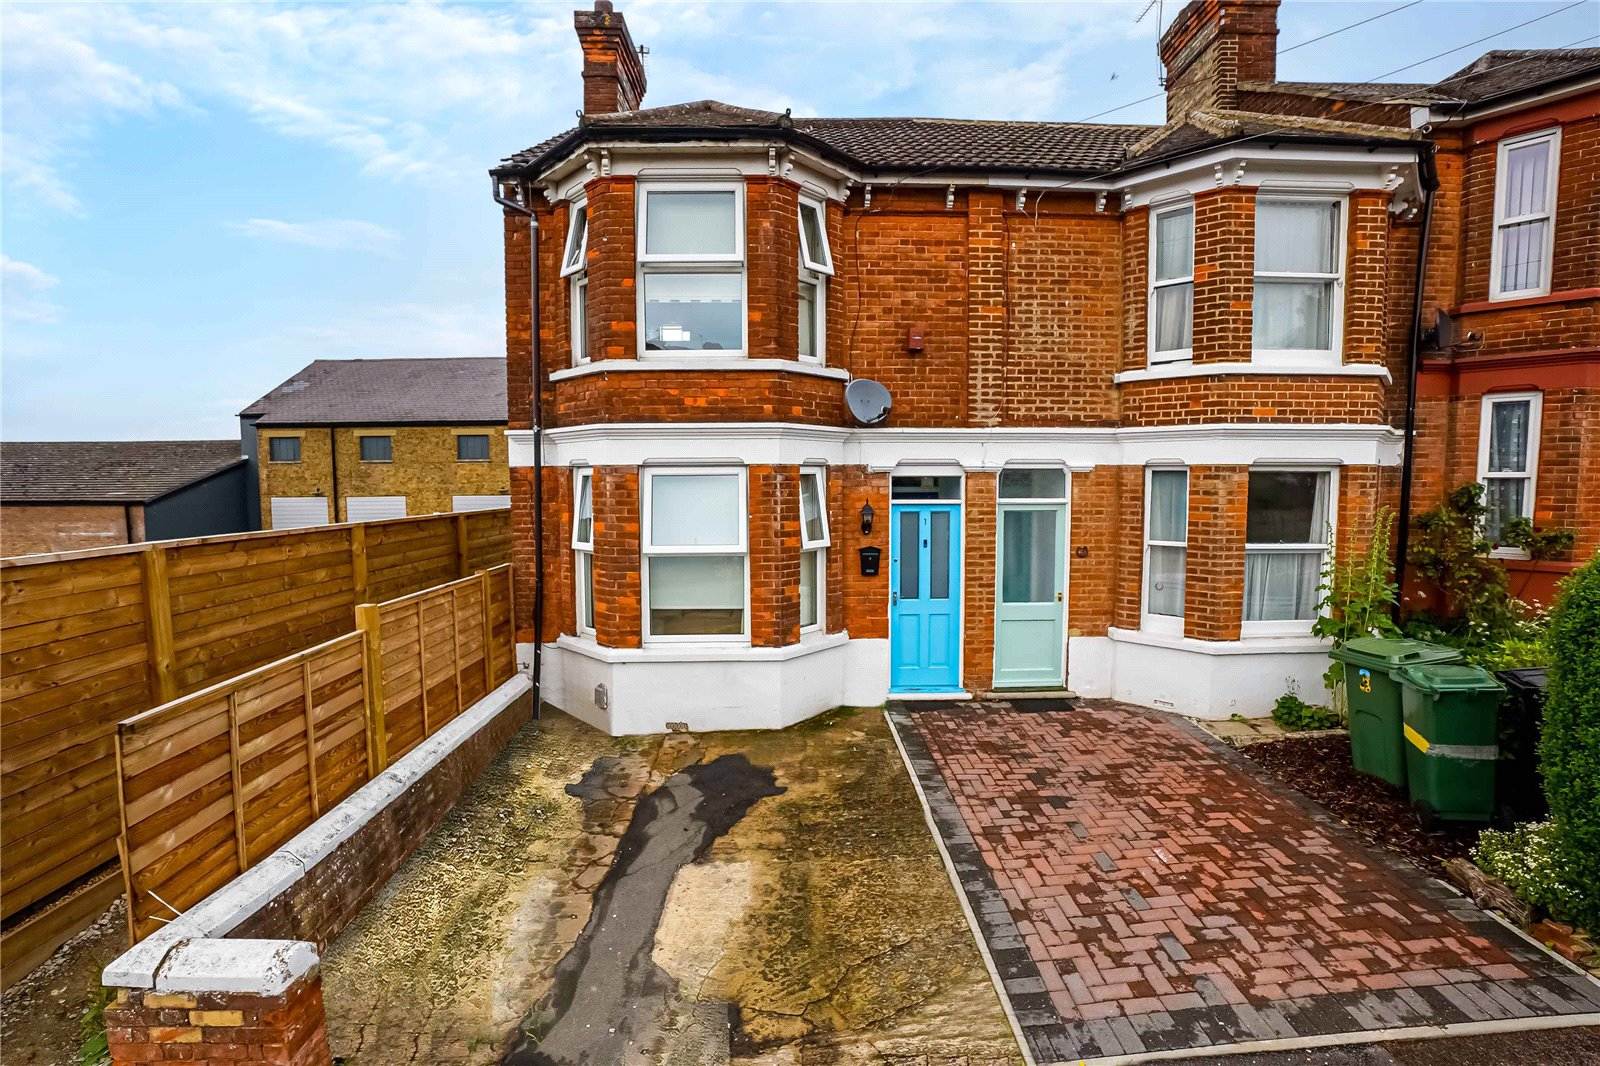 2 bed house for sale in Barton Road, Maidstone, ME15